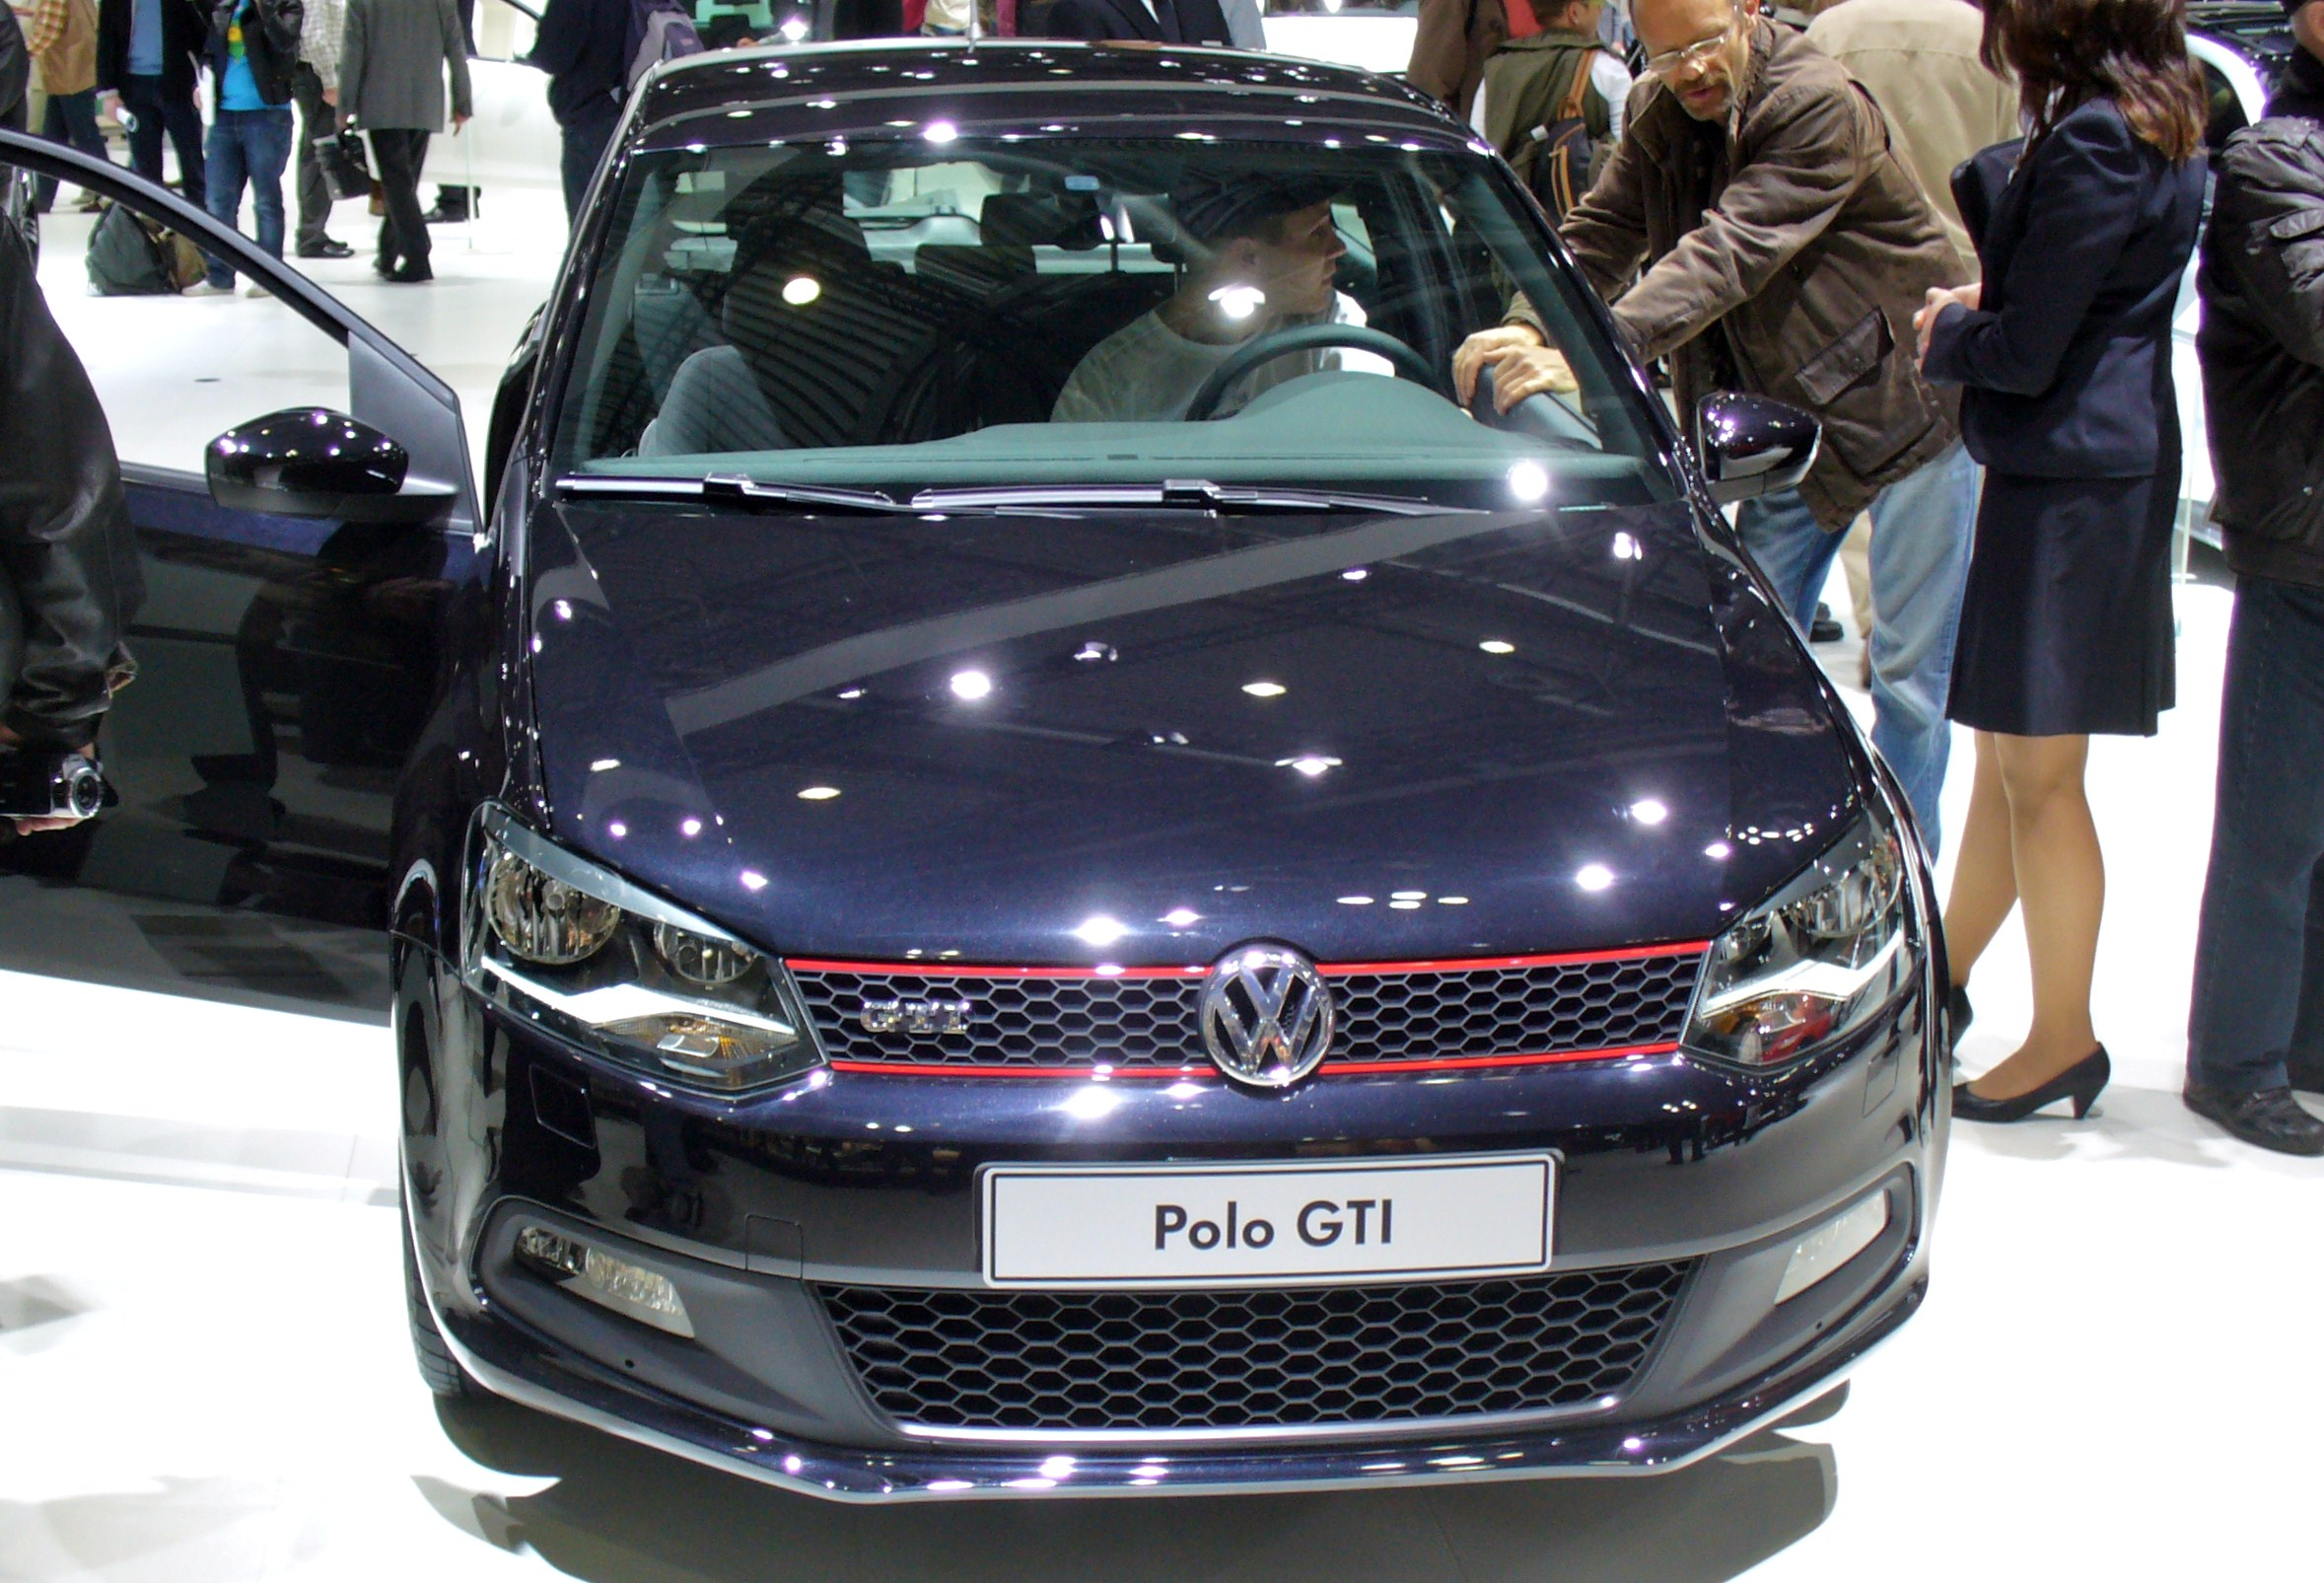 file vw polo v gti jpg wikimedia commons. Black Bedroom Furniture Sets. Home Design Ideas